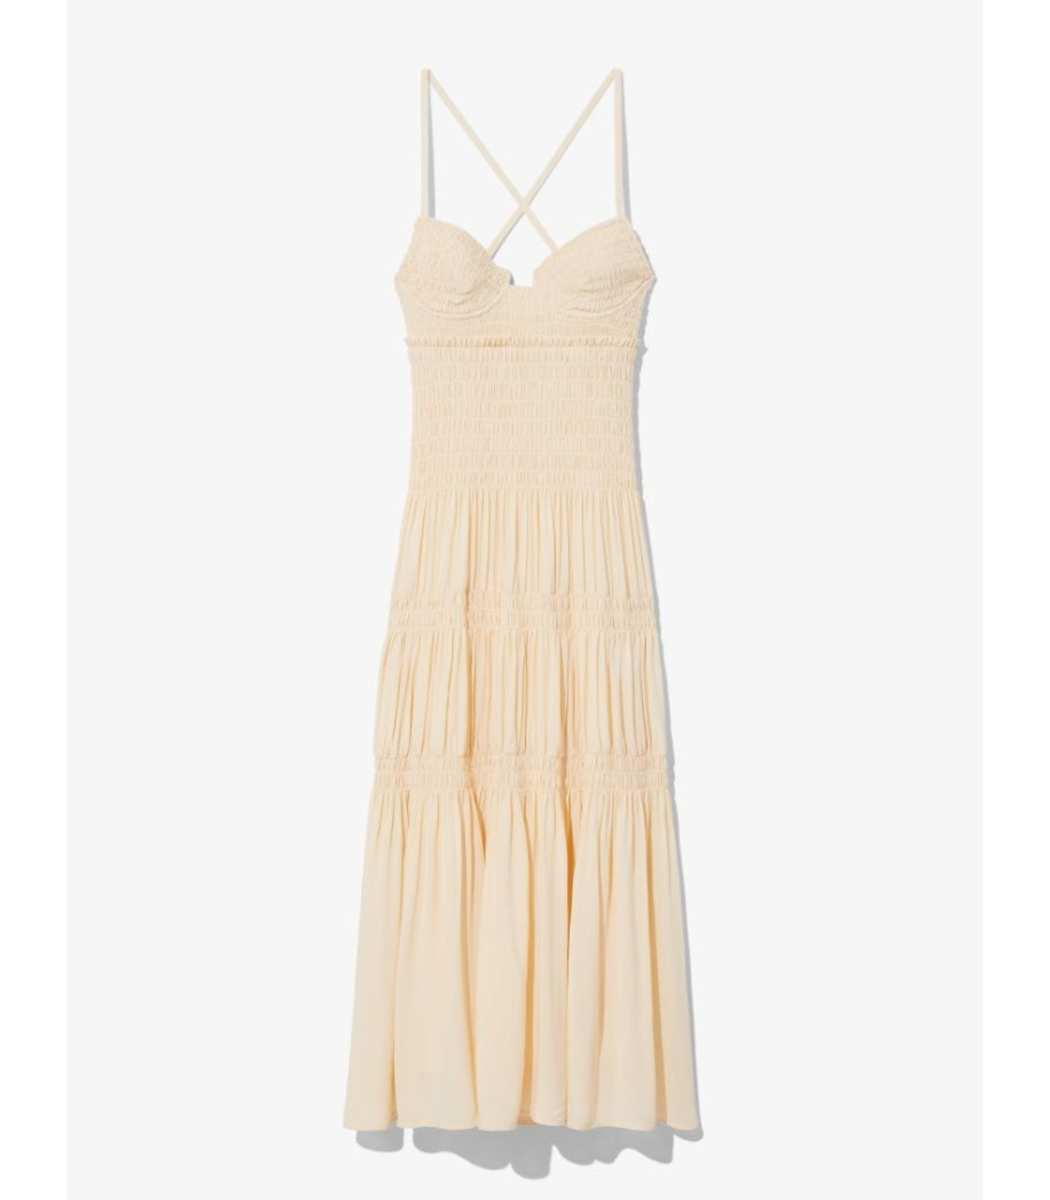 Proenza Schouler Smocked Bustier Dress